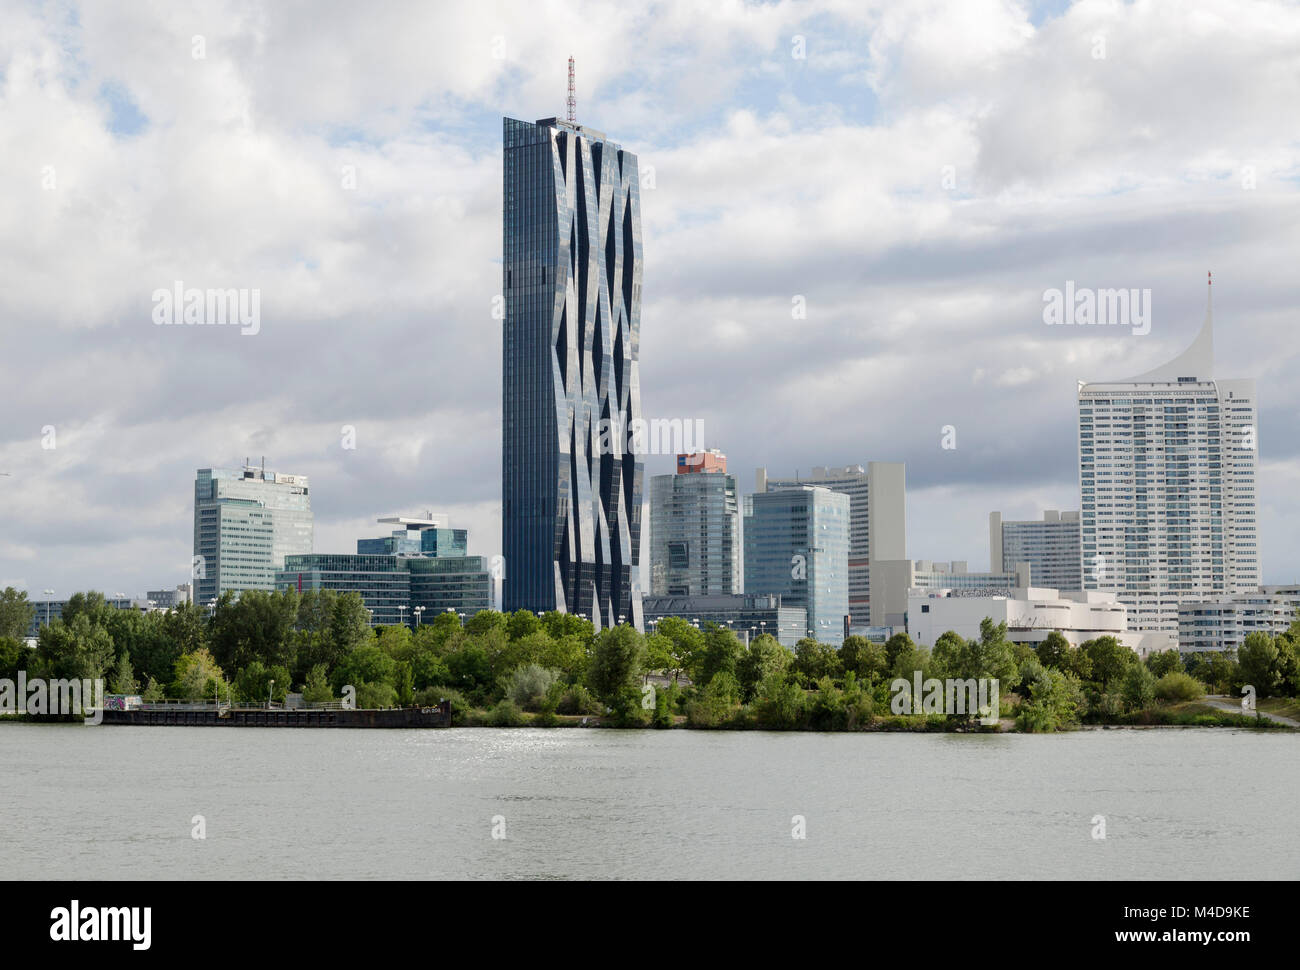 Danube city, the modern city across the Danube river from Vienna, Austria. Also known as Danube island. - Stock Image